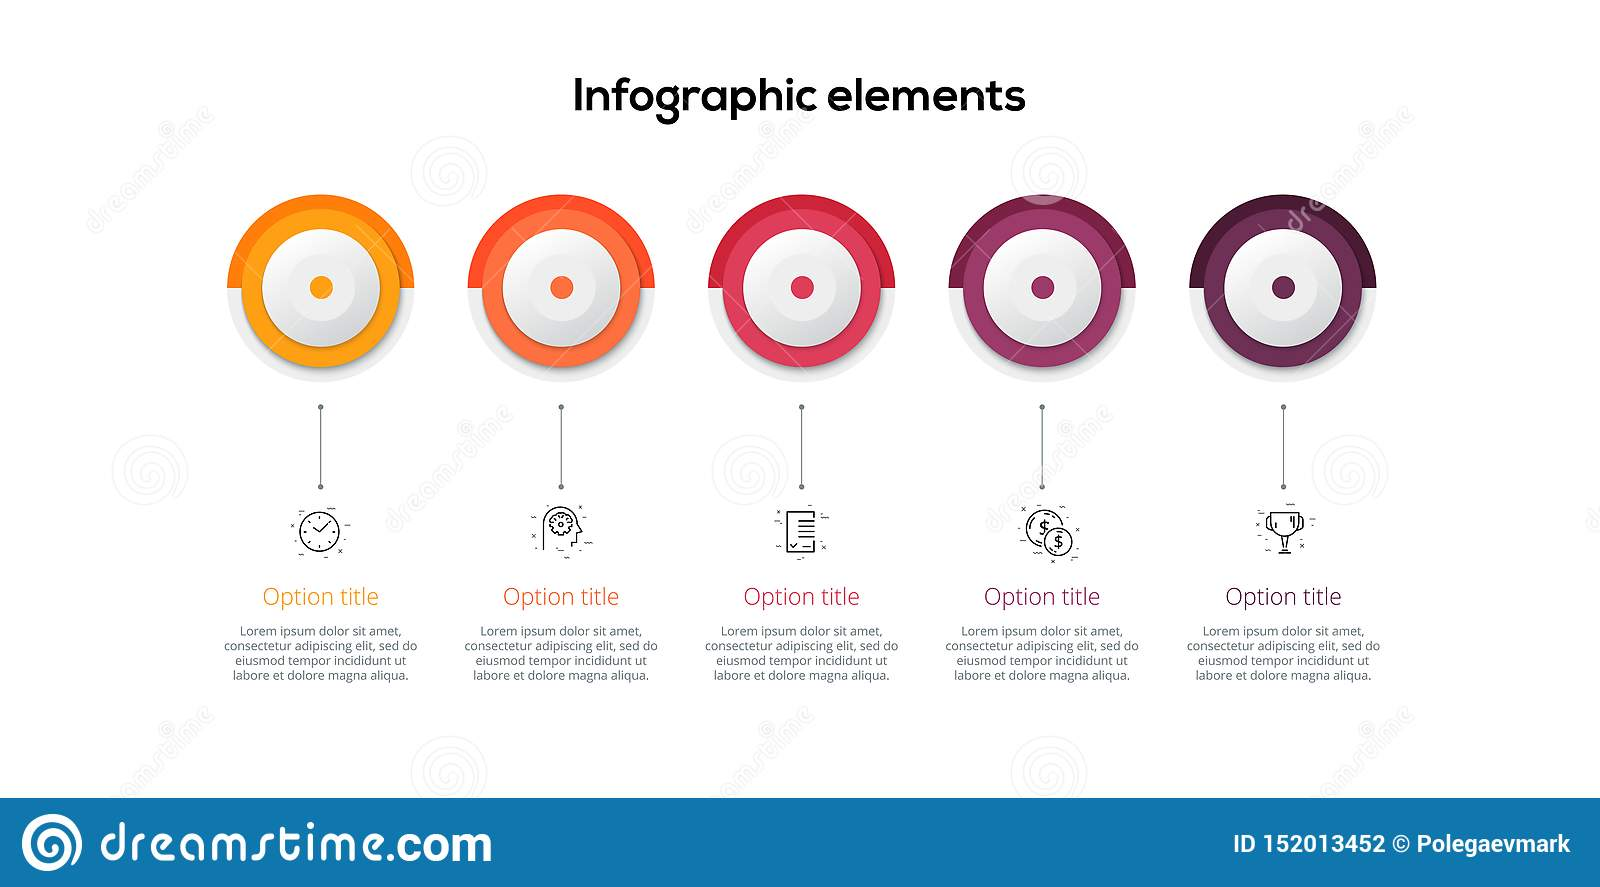 Business process chart infographics with 5 step circles. Circular corporate workflow graphic elements. Company flowchart